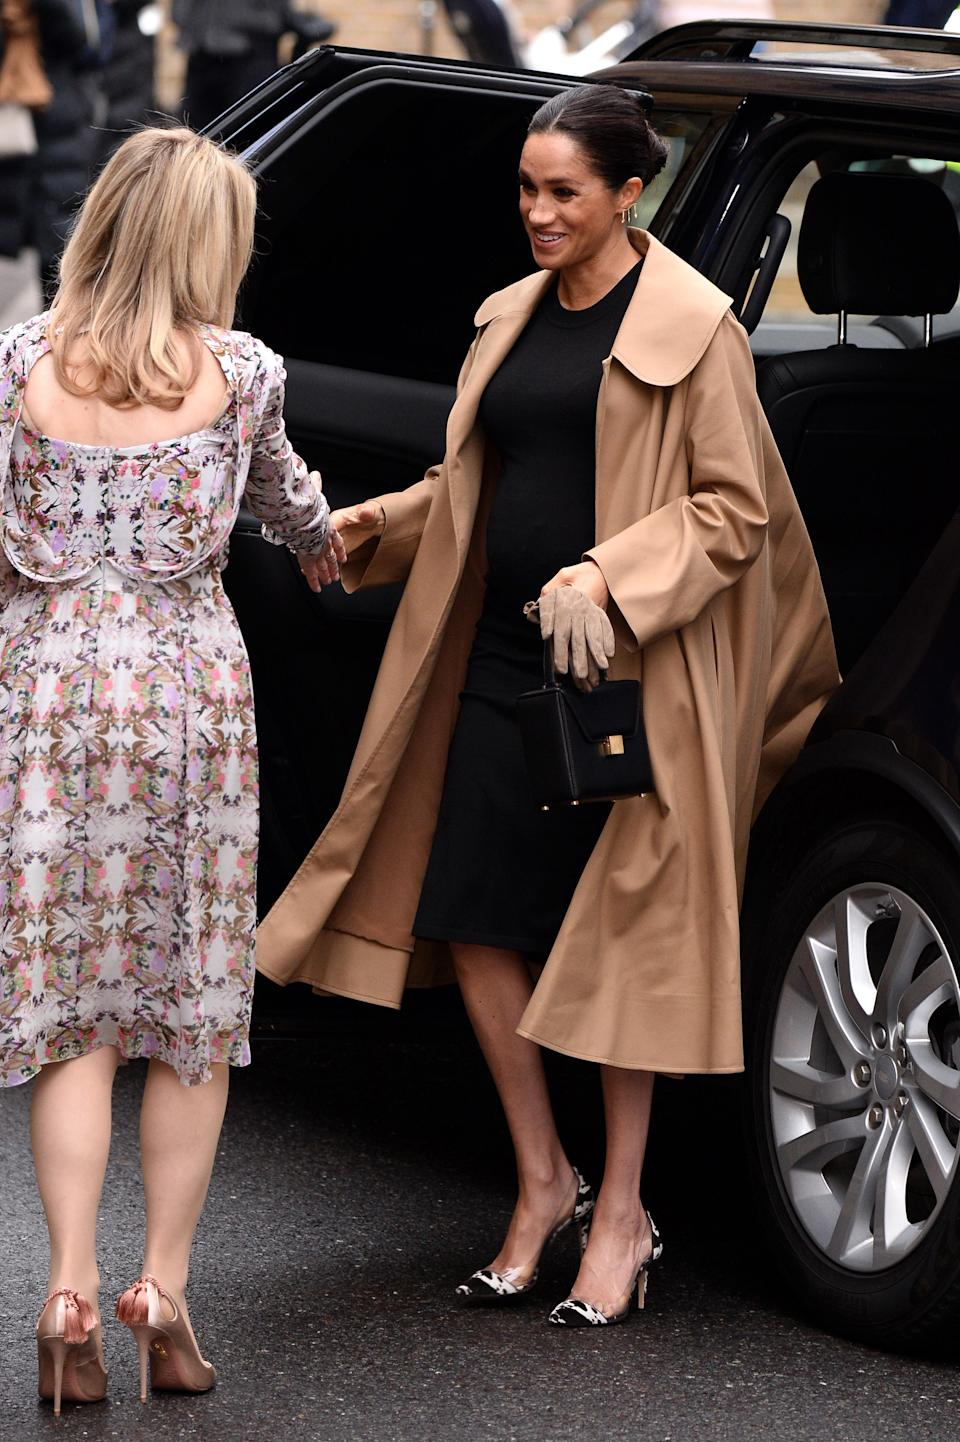 The Duchess of Sussex wore a chic ensemble to kick-start 2019, as she paid a visit to one of her first patronages Smart Works. The pregnant royal chose a £2,492 camel-hued Oscar de la Renta coat with a £170 black dress by US maternity label Hatch. [Photo: Getty]